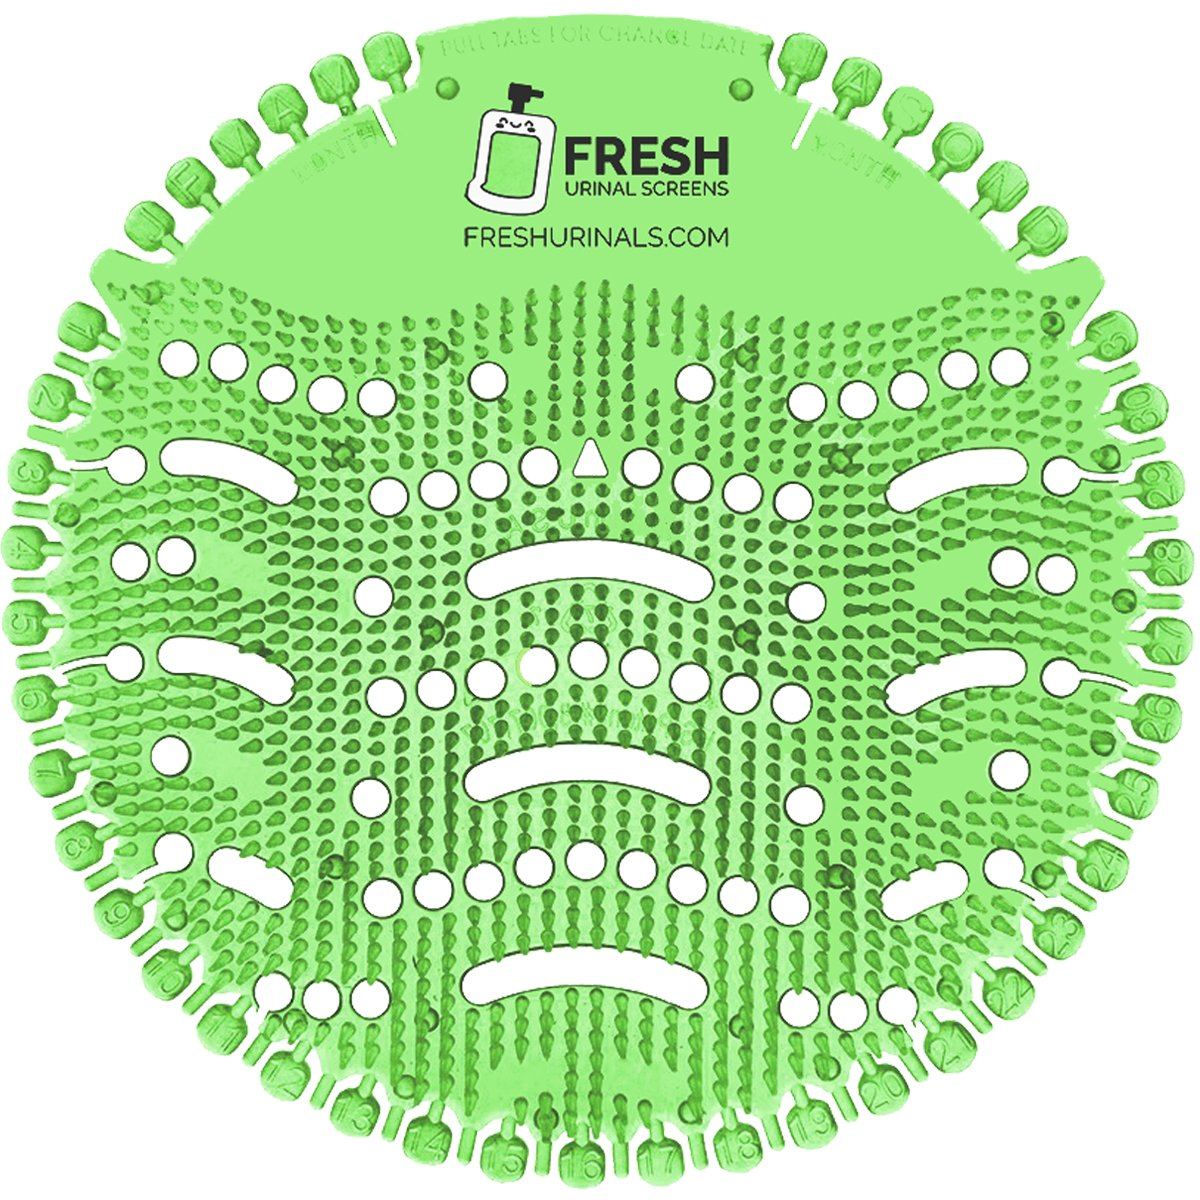 Urinal Screen Deodorizer 10 Pack - Scent Lasts for Up to 5000 Flushes – Anti-Splash & Odor Neutralizer – Ideal for Bathrooms, Restrooms, Office, Restaurants, Schools – Green Mint Fragrance by Fresh Urinal Screens